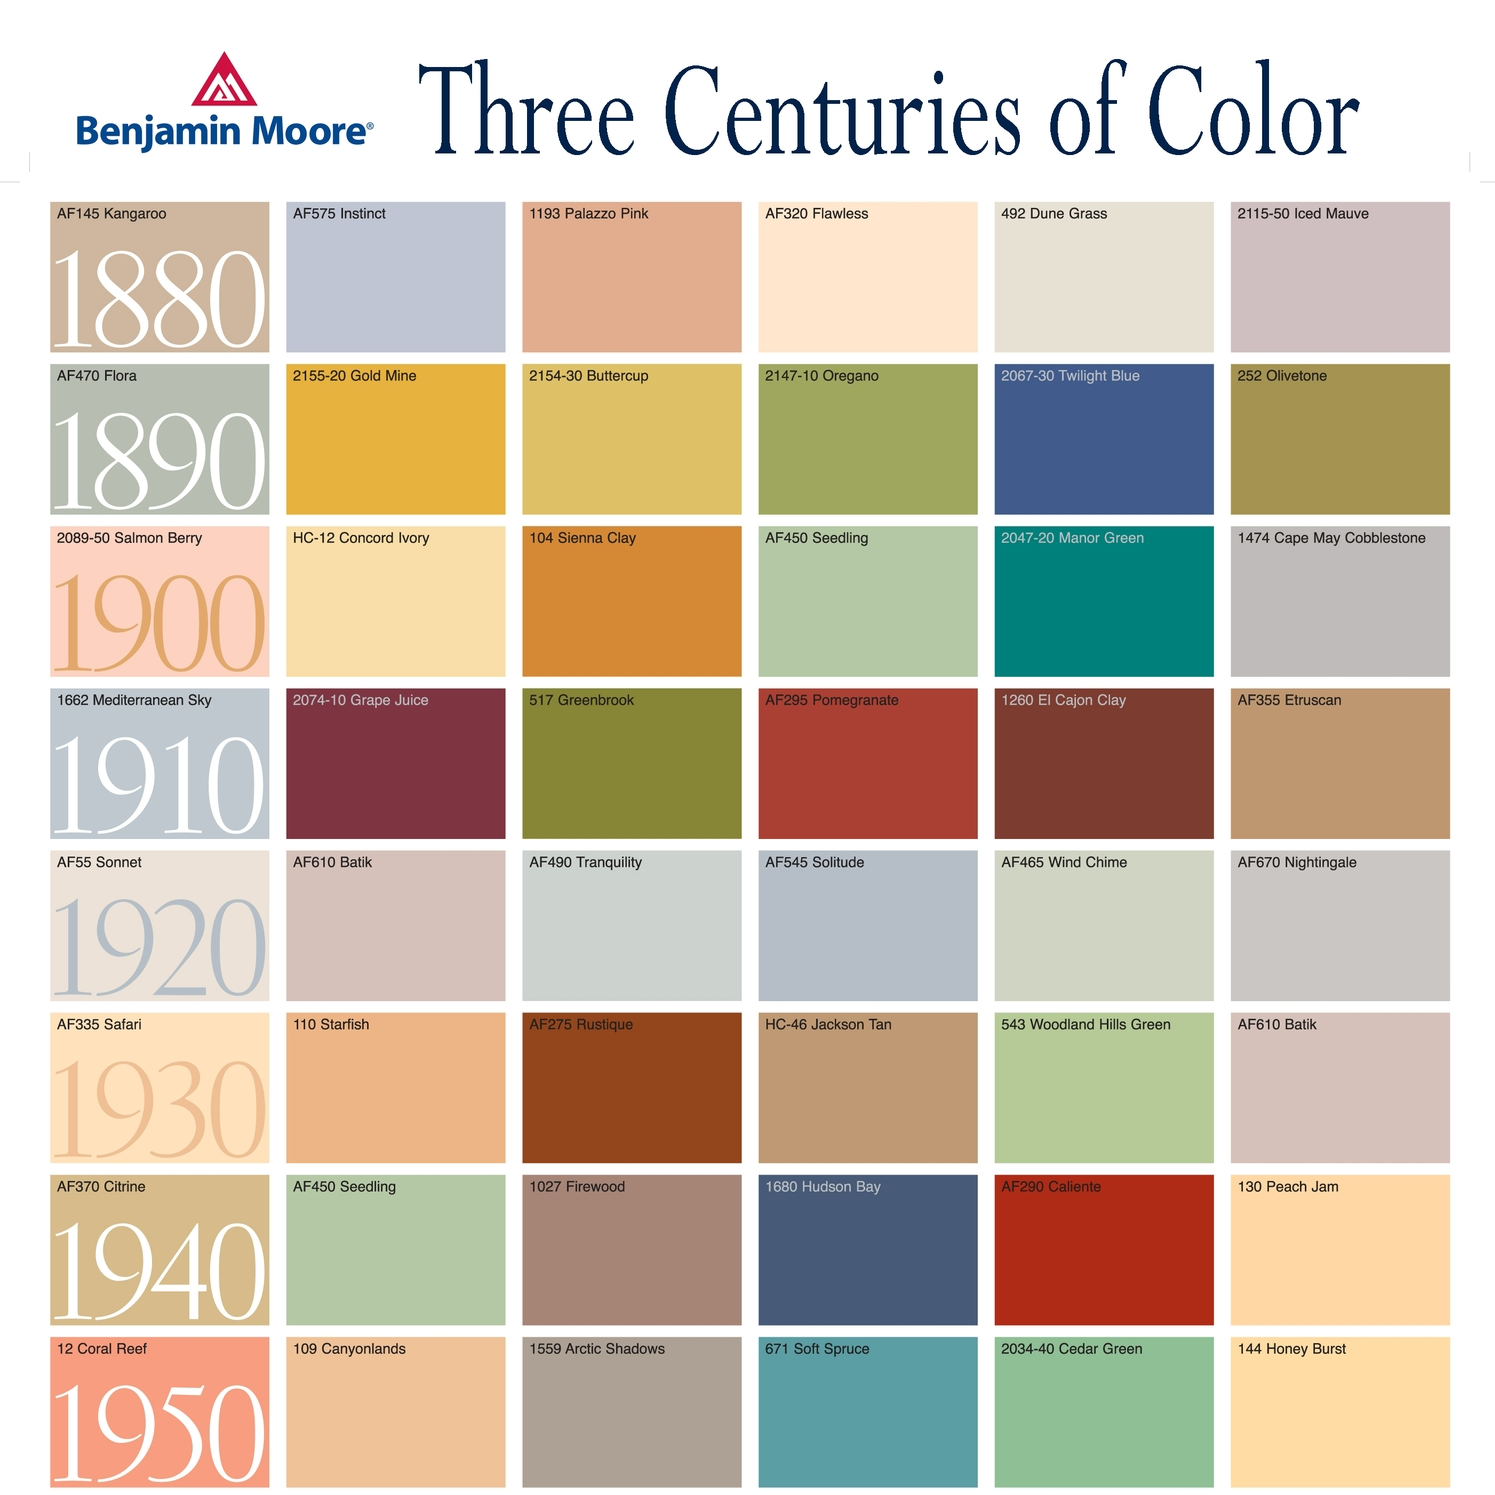 Three Centuries of Color in 30 Seconds